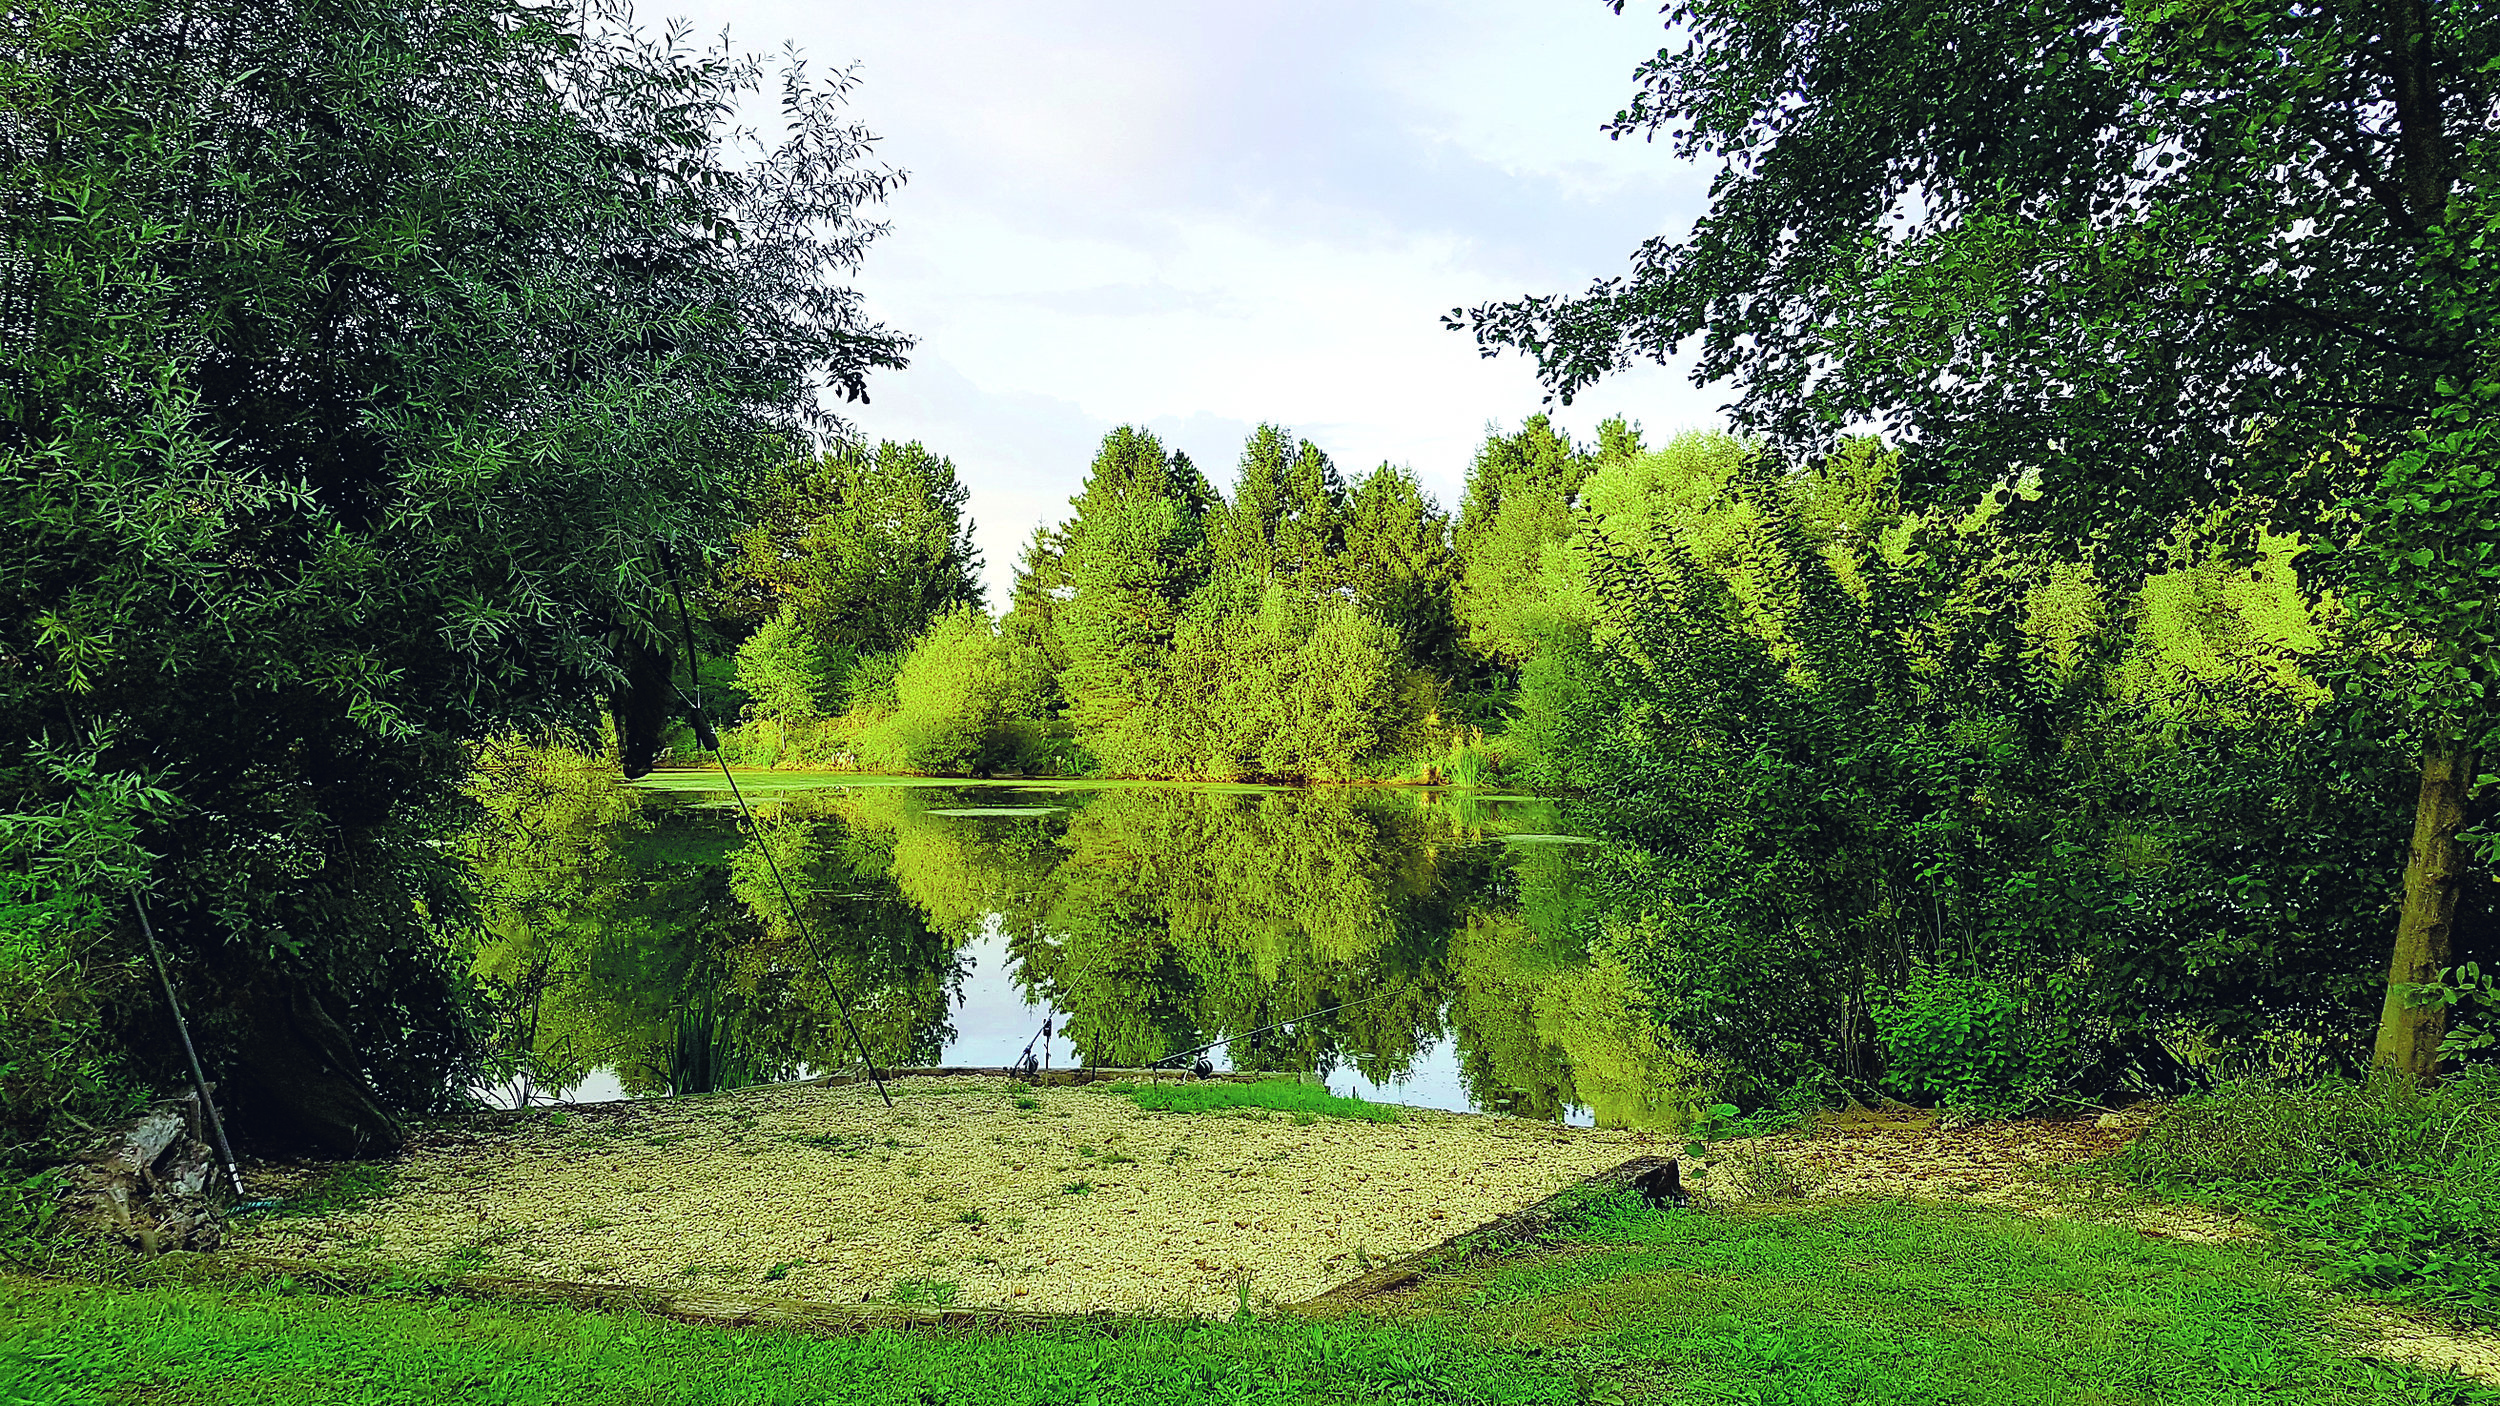 Fishery Fact File and Contacts - Owners: Marcus and Bianca WetzlUK contact address: North Grove Long Lane, Fowlmere, Royston, Herts. SG8 7TGFishery address: Les Lacs Du Verger, Etang 87, Rue du Canal, Vitry-en-Perthois, near Vitry-Le-Francois, 51300, FranceUK telephone contacts: Landline 01763 208699, Mobile 07833 098209Email contacts: bianca@champagnecarping.com marcus@champagnecarping.comWebsite: www.champagnecarping.com